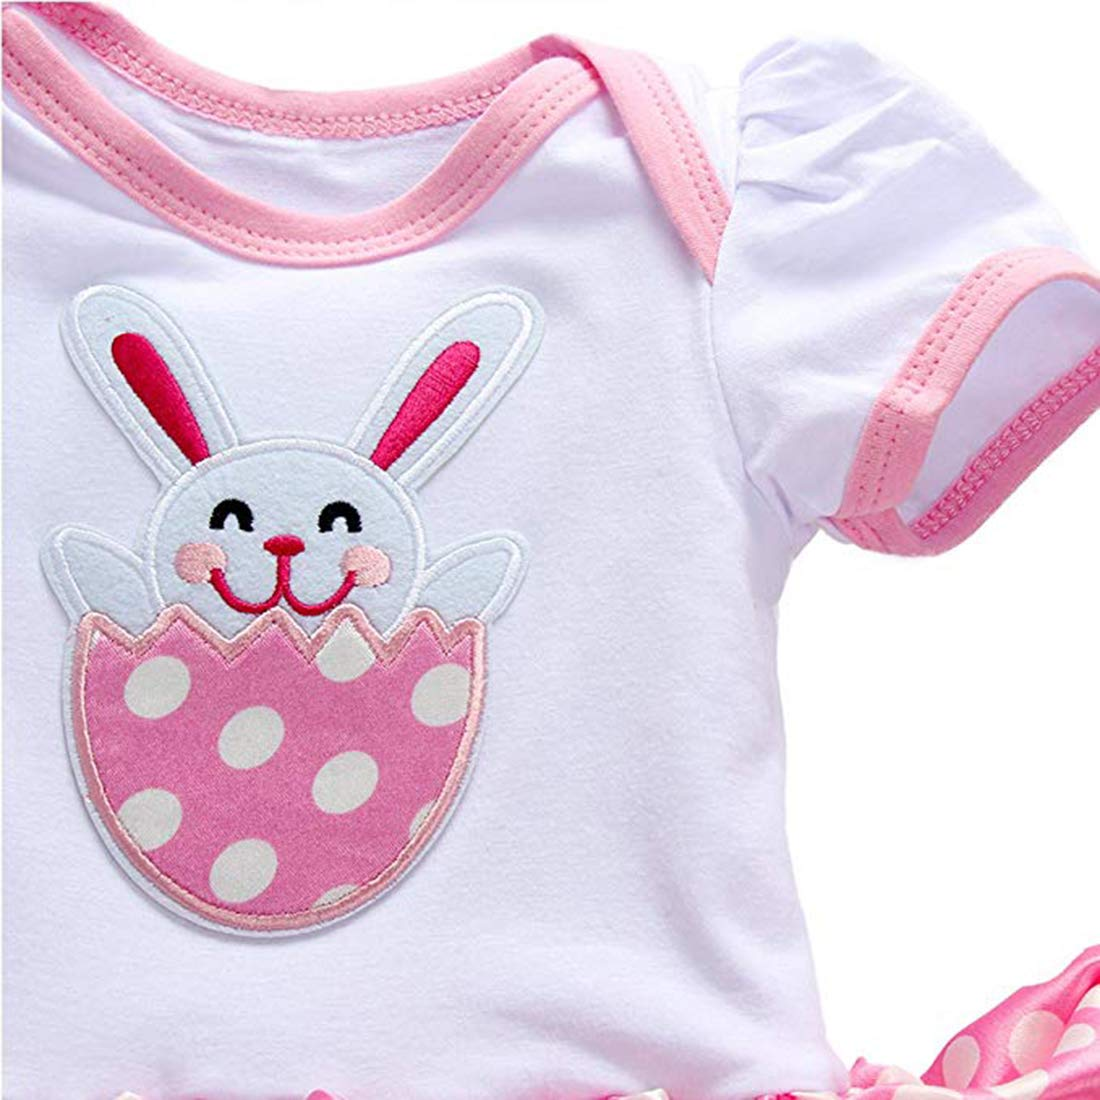 Fairy Baby Newborn Baby Girl Easter Dress Cotton 3pcs My 1st Easter Outfit Bunny Eggs Romper Bodysuit Tutu Skirt Set